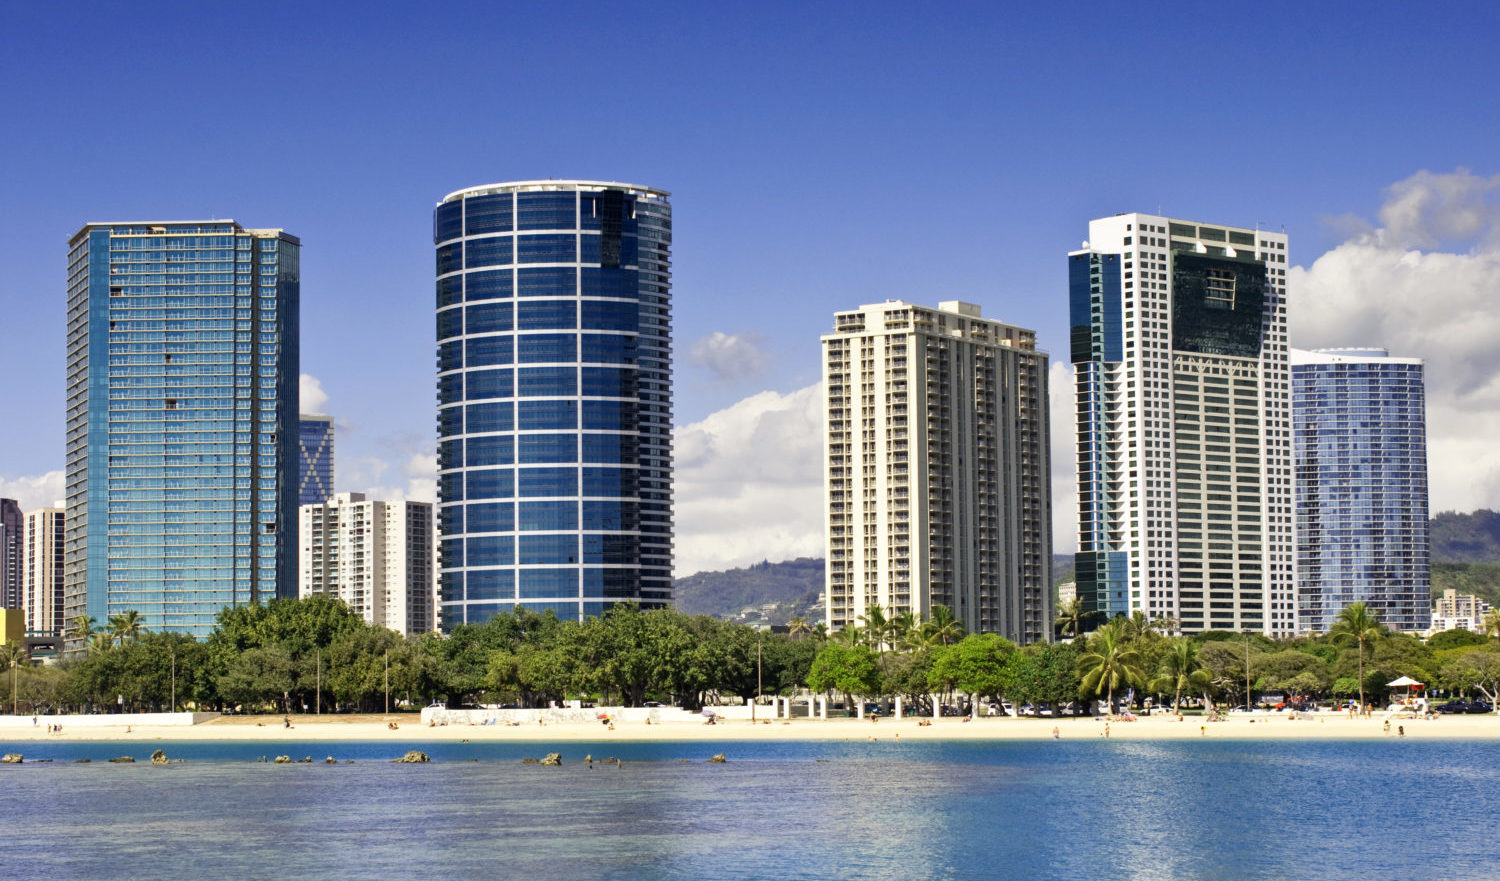 """Ala Moana Beach Park and luxury condominiums located near Waikiki. Honolulu, Oahu, Hawaii, USA."""